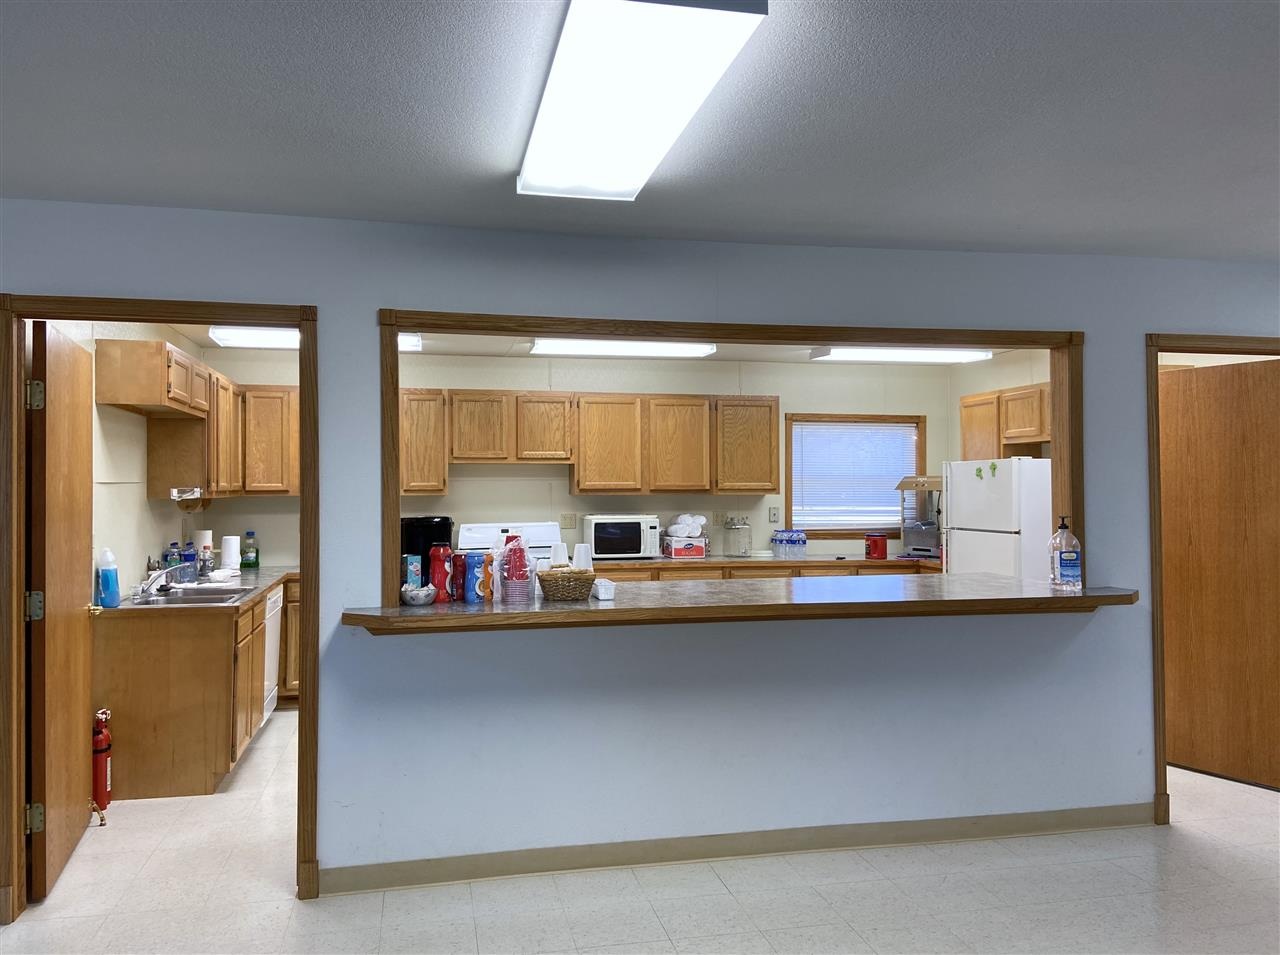 For Sale: 415 W MAPLE ST, Oxford KS